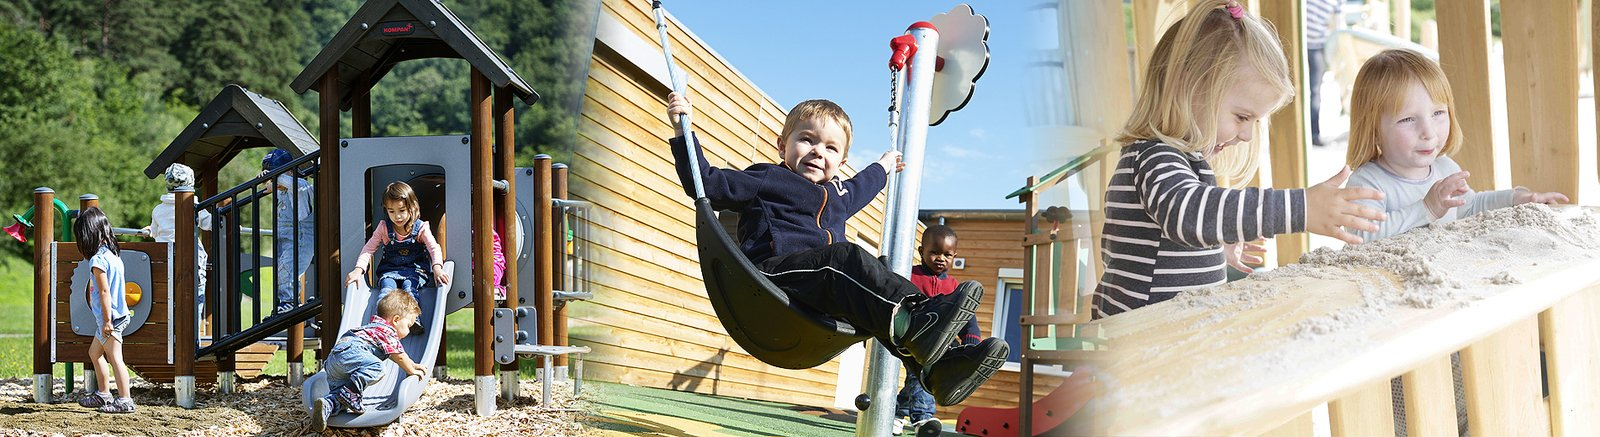 IMAGINATIVE PLAYGROUND EQUIPMENT FOR EARLY YEARS FOUNDATION STAGE